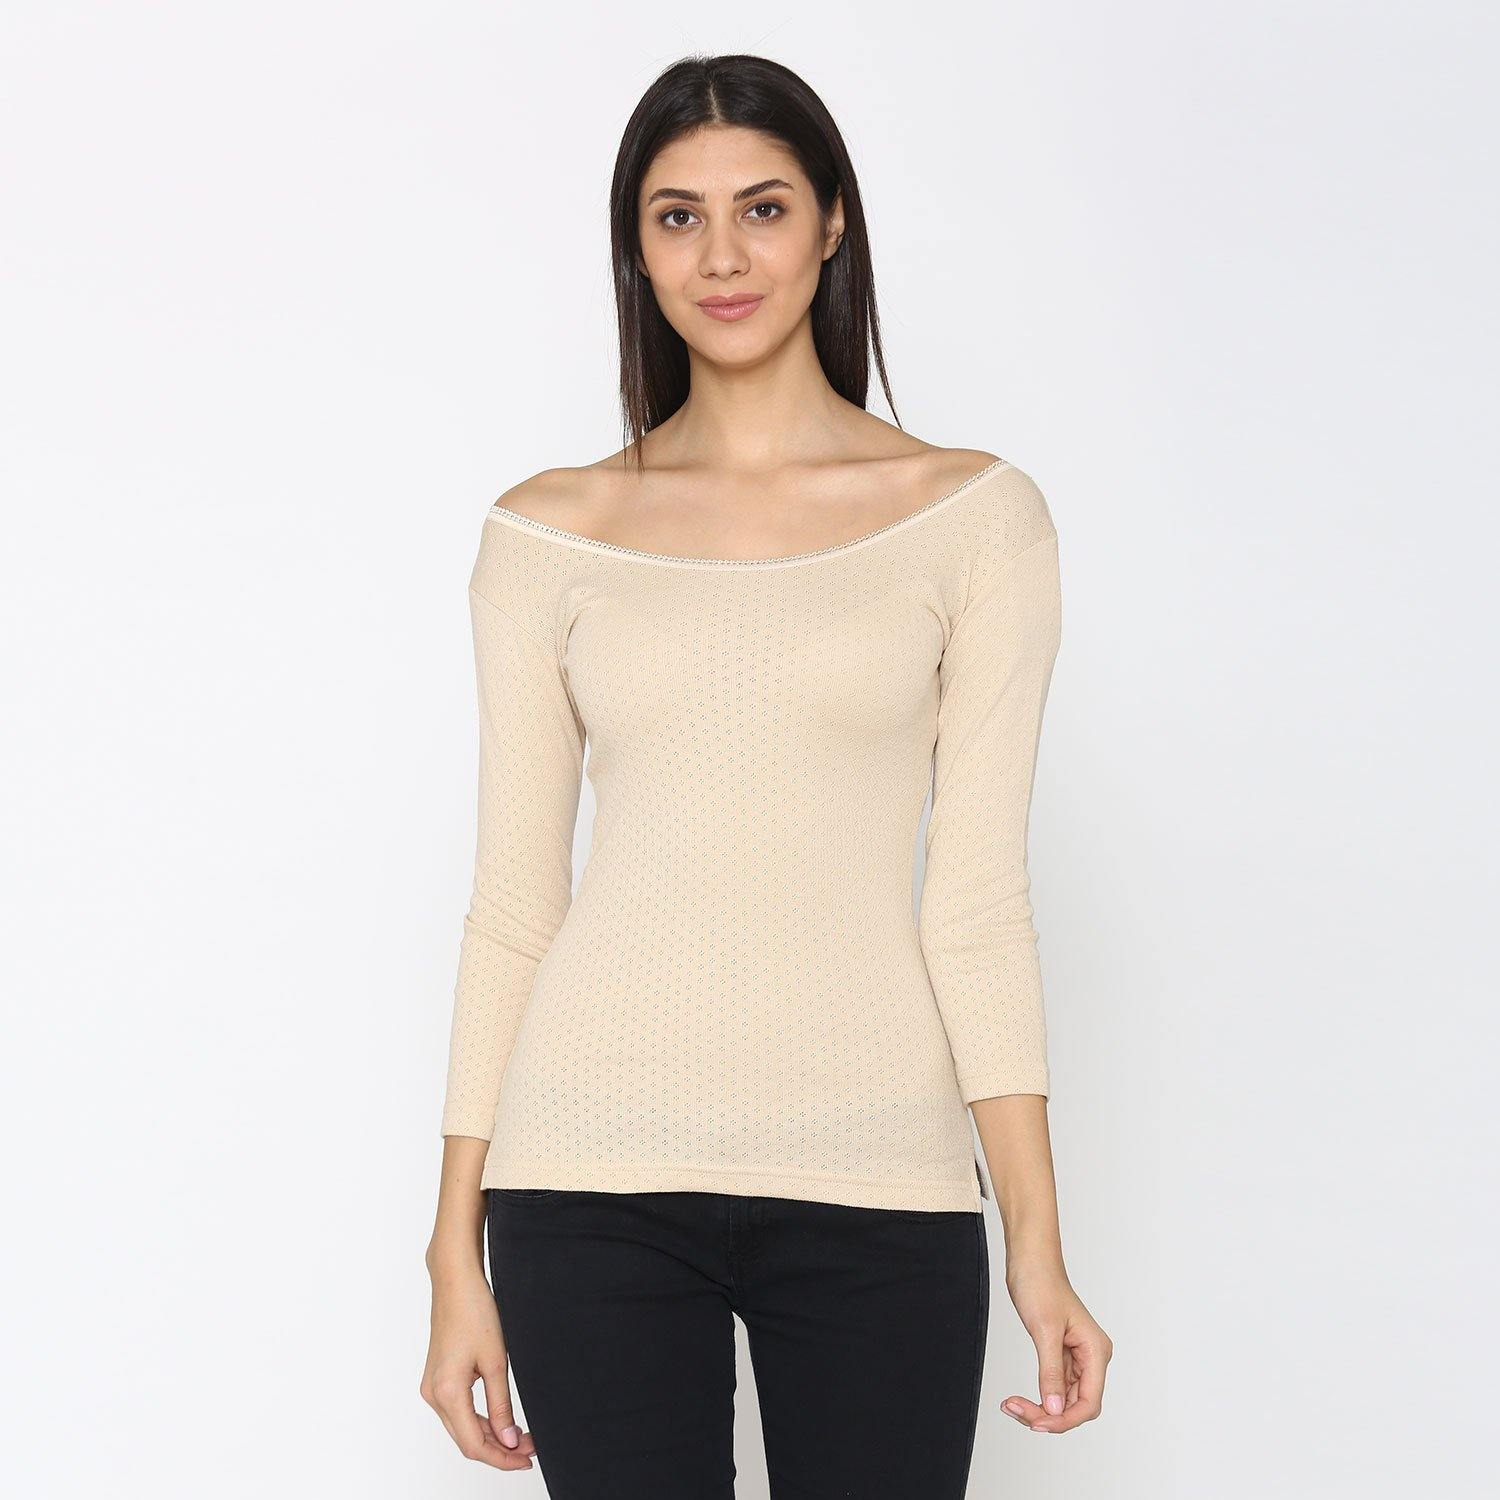 Women Plain 3/4 - Length Thermal Top - Skin